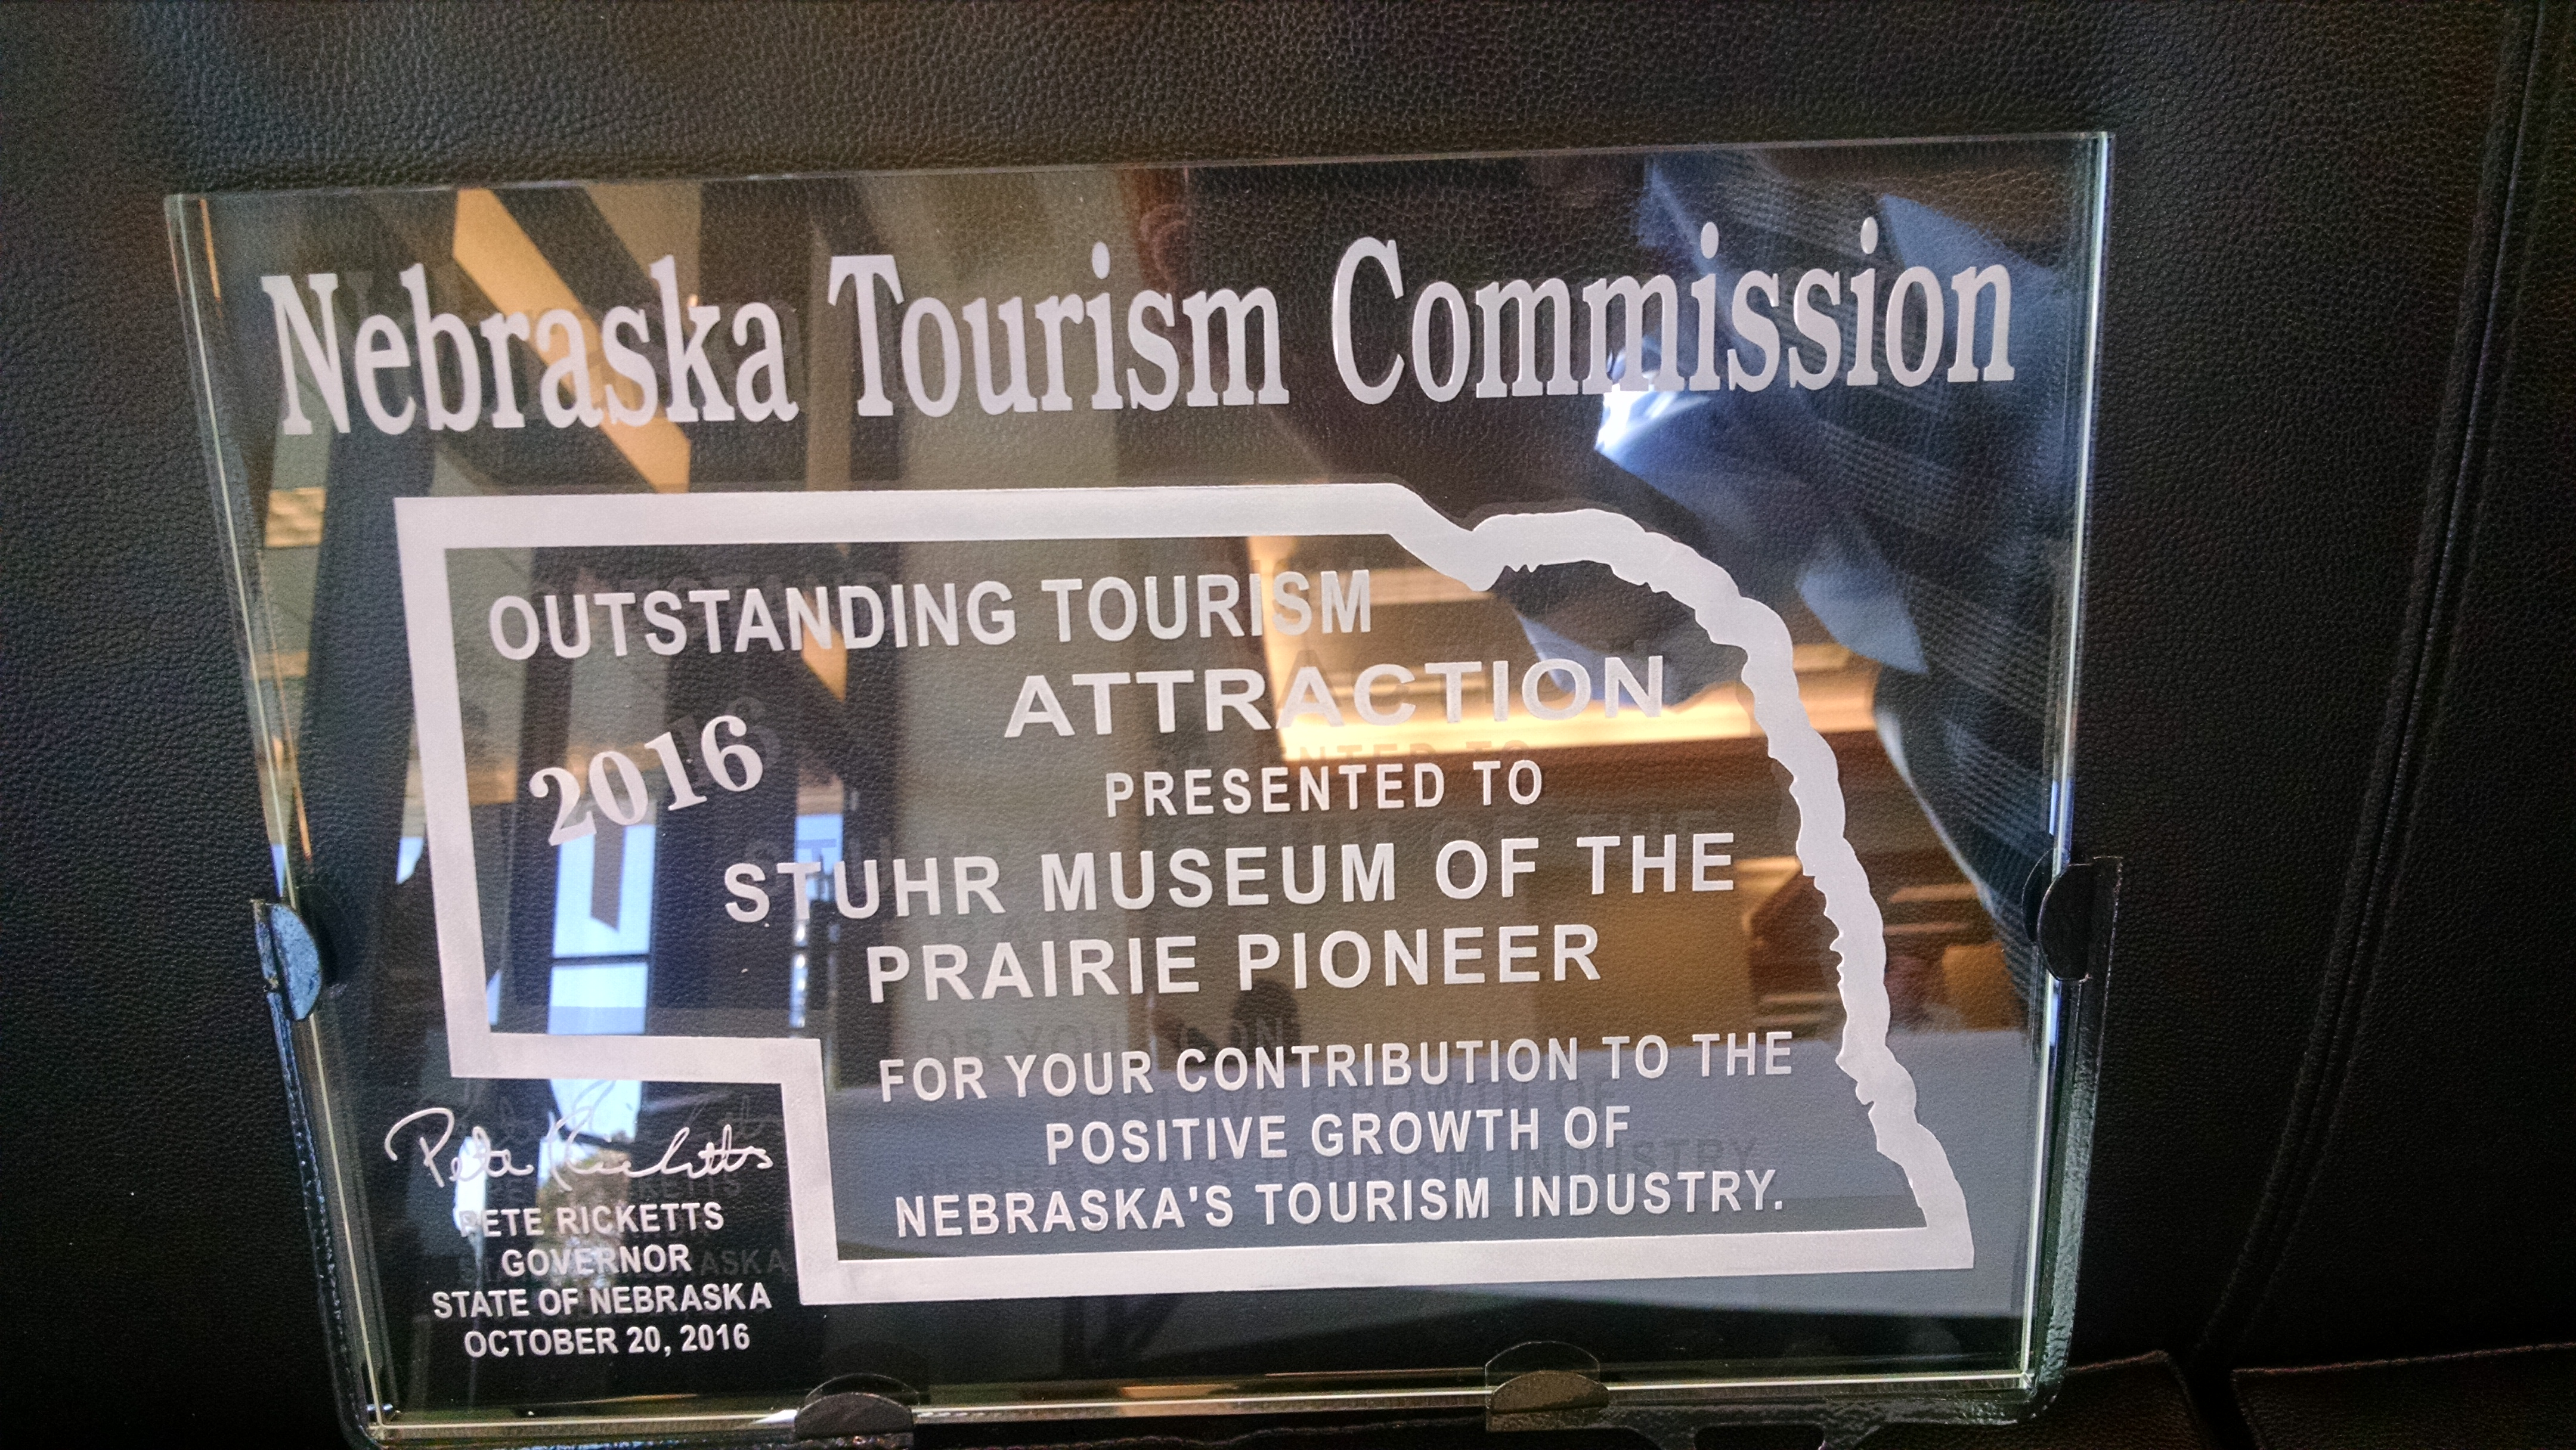 Outstanding Tourism Attraction Award